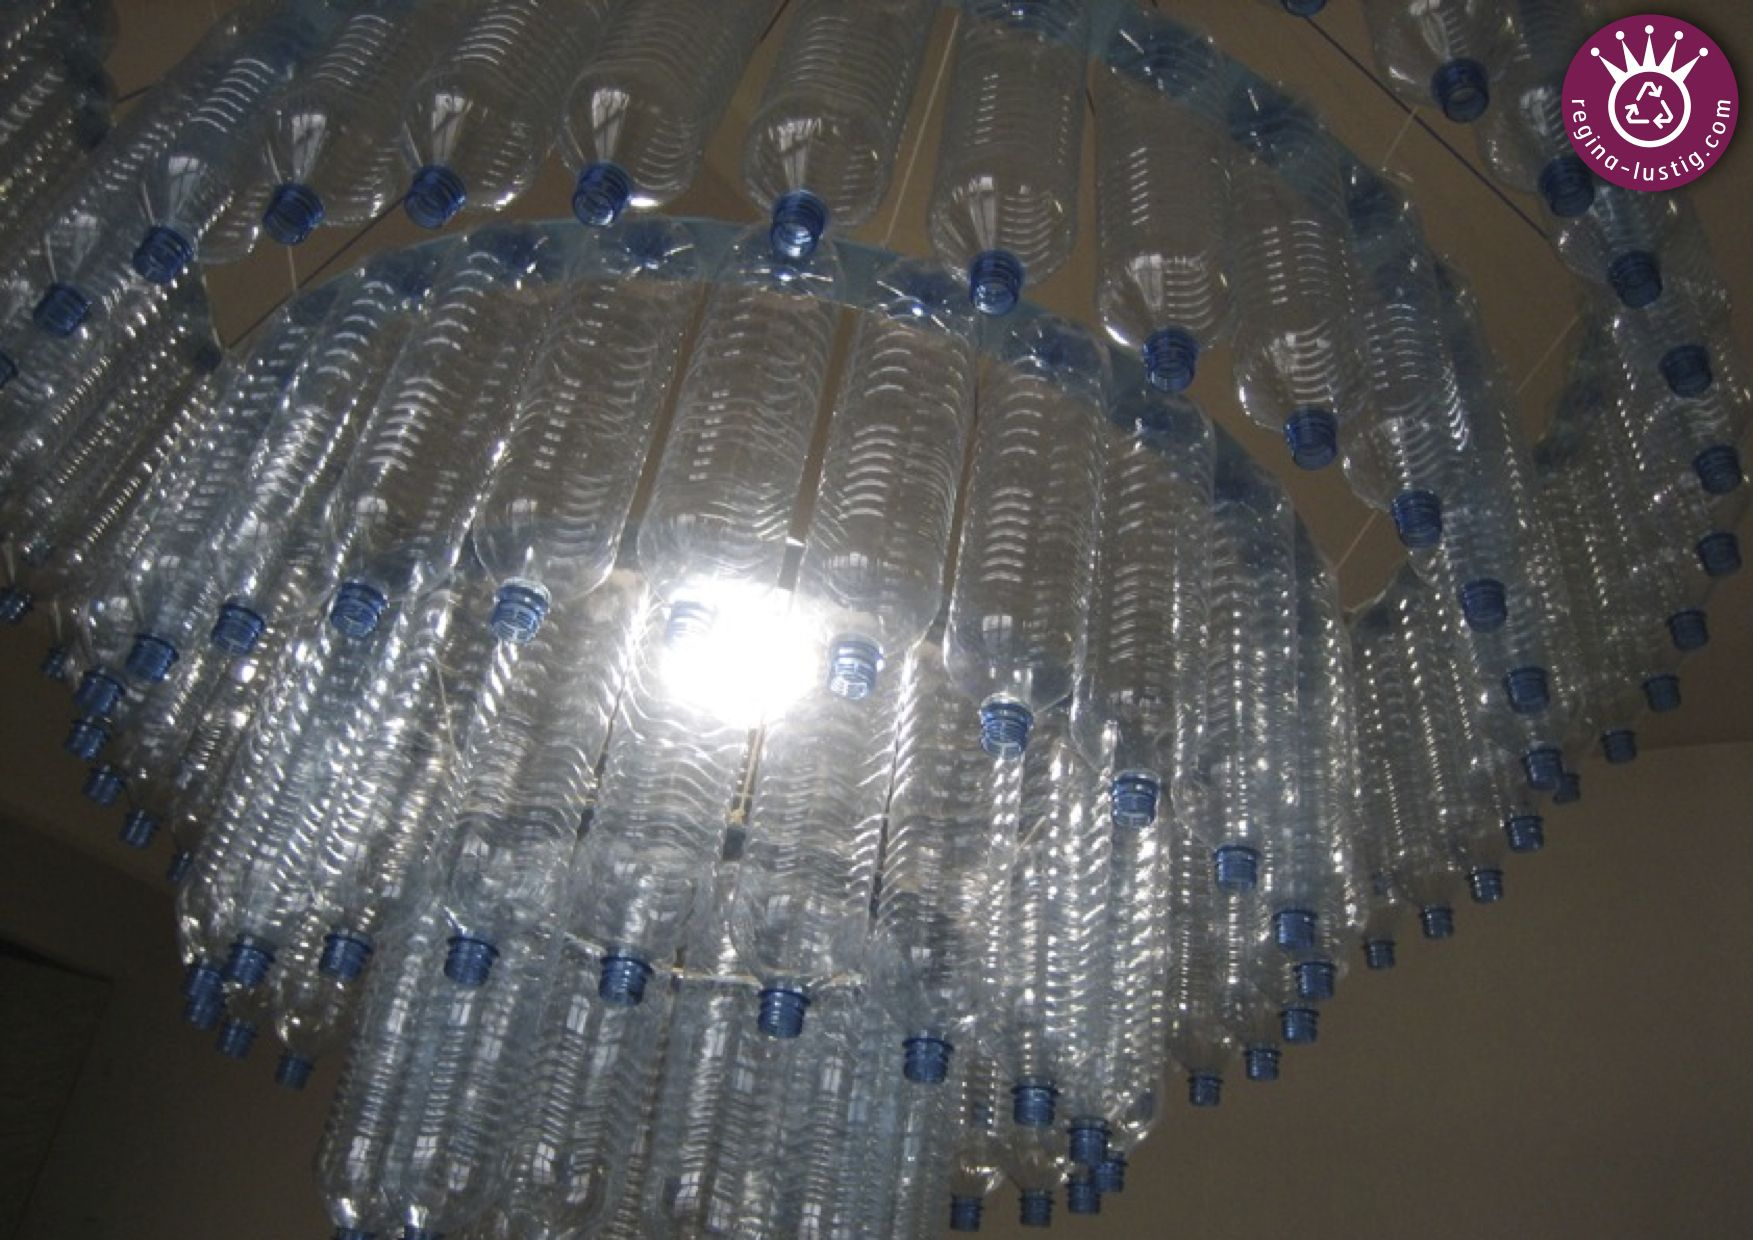 luster upcycling recycling diy pet bottle pet flasche lampe lamp mein atelier. Black Bedroom Furniture Sets. Home Design Ideas